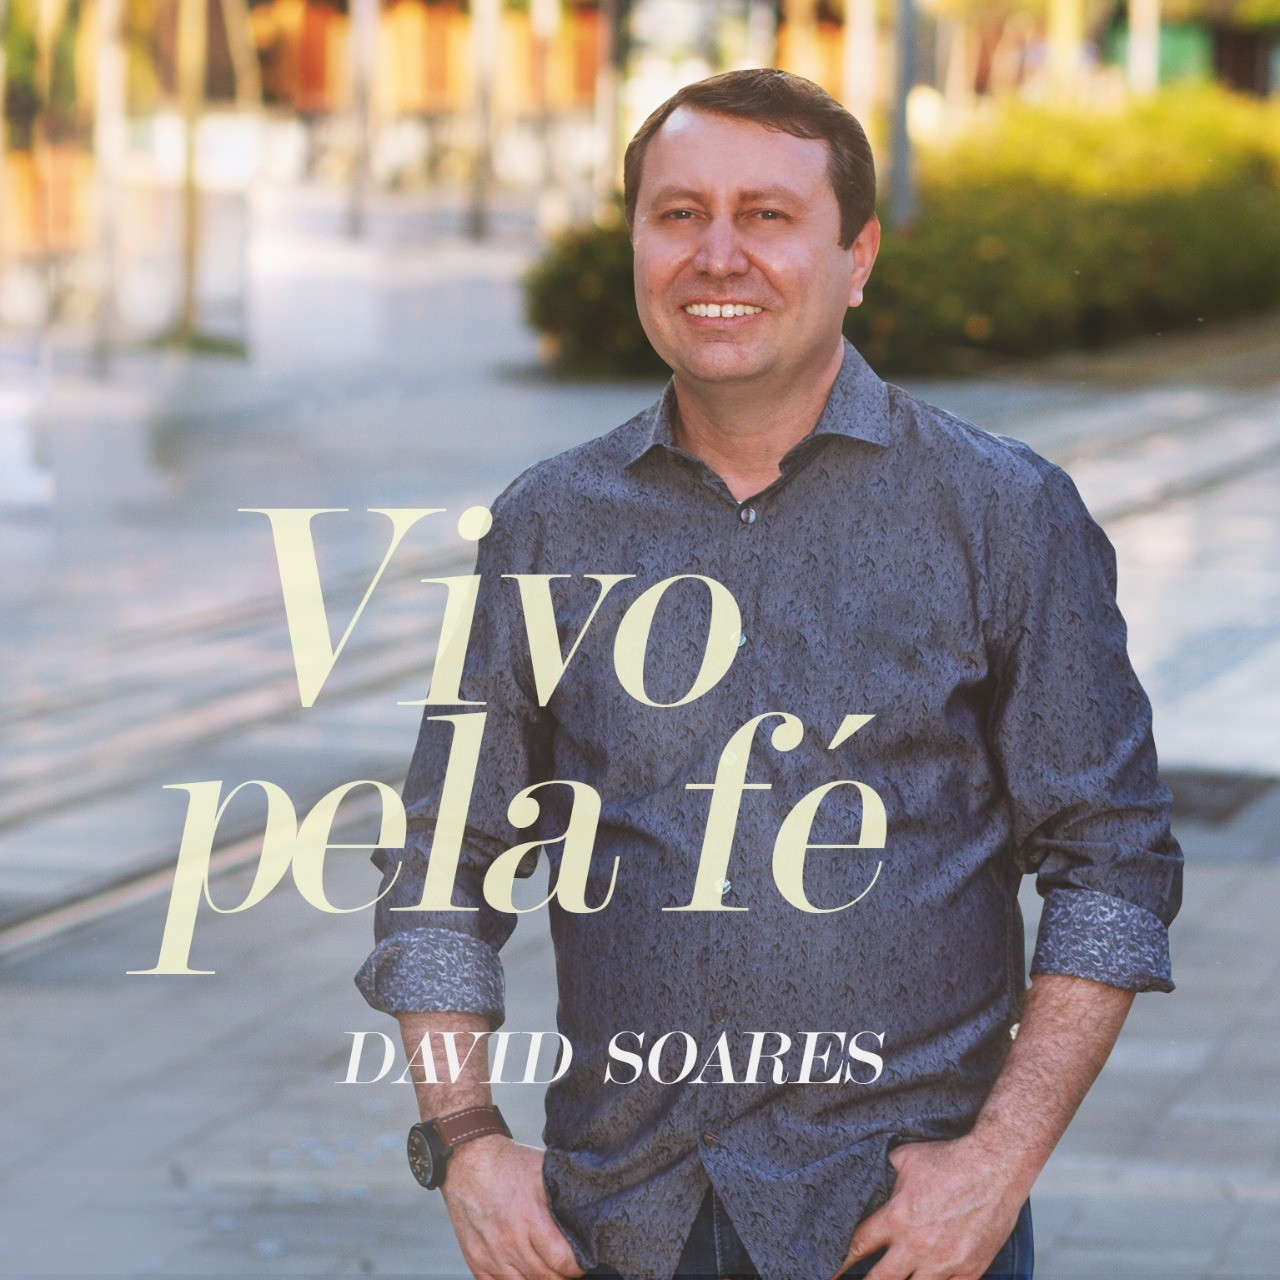 CD DAVID SOARES VIVO PELA Fé